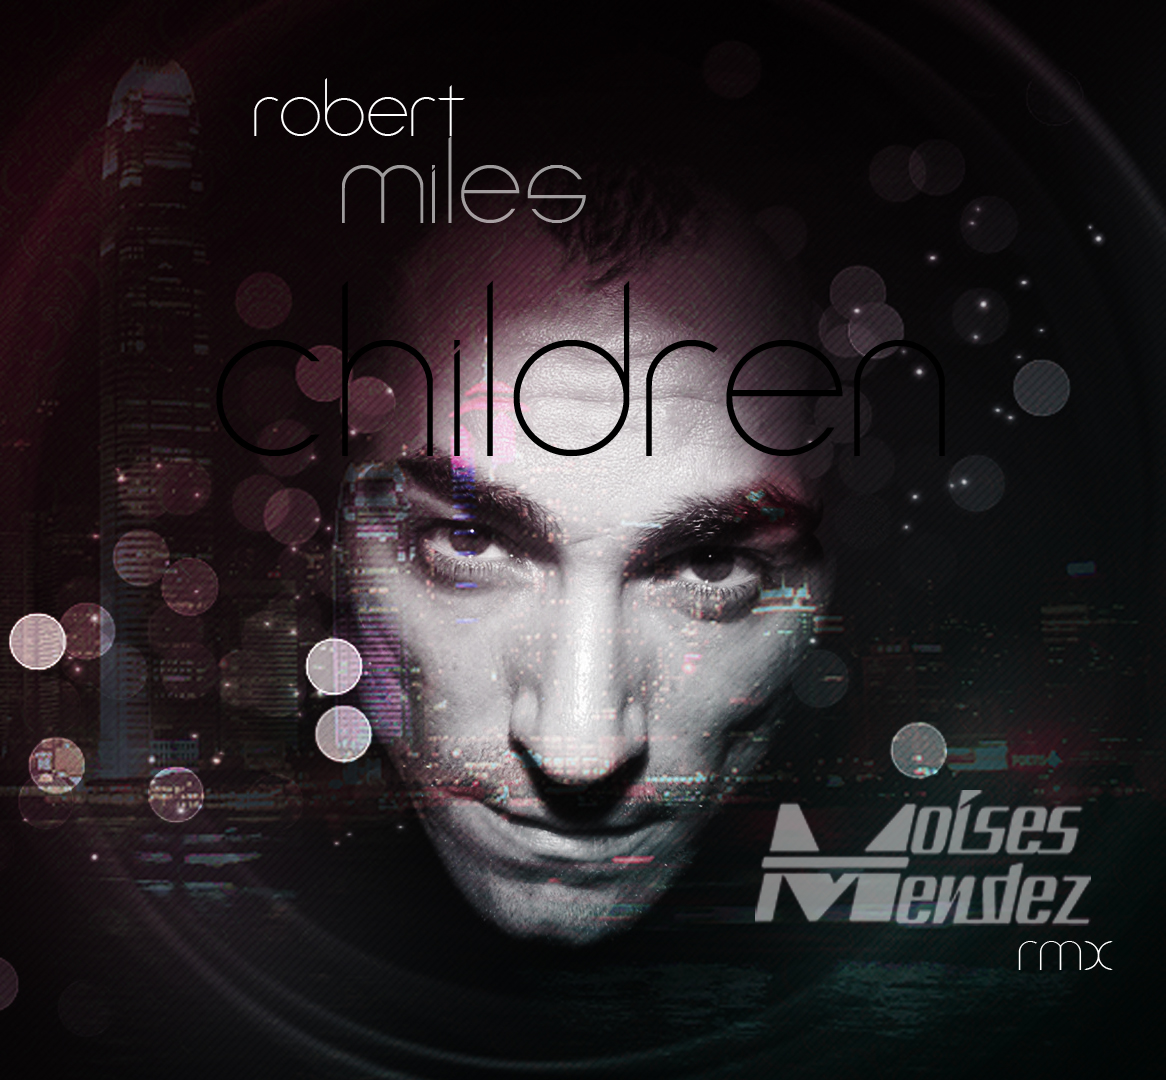 Dreamland (Robert Miles album)